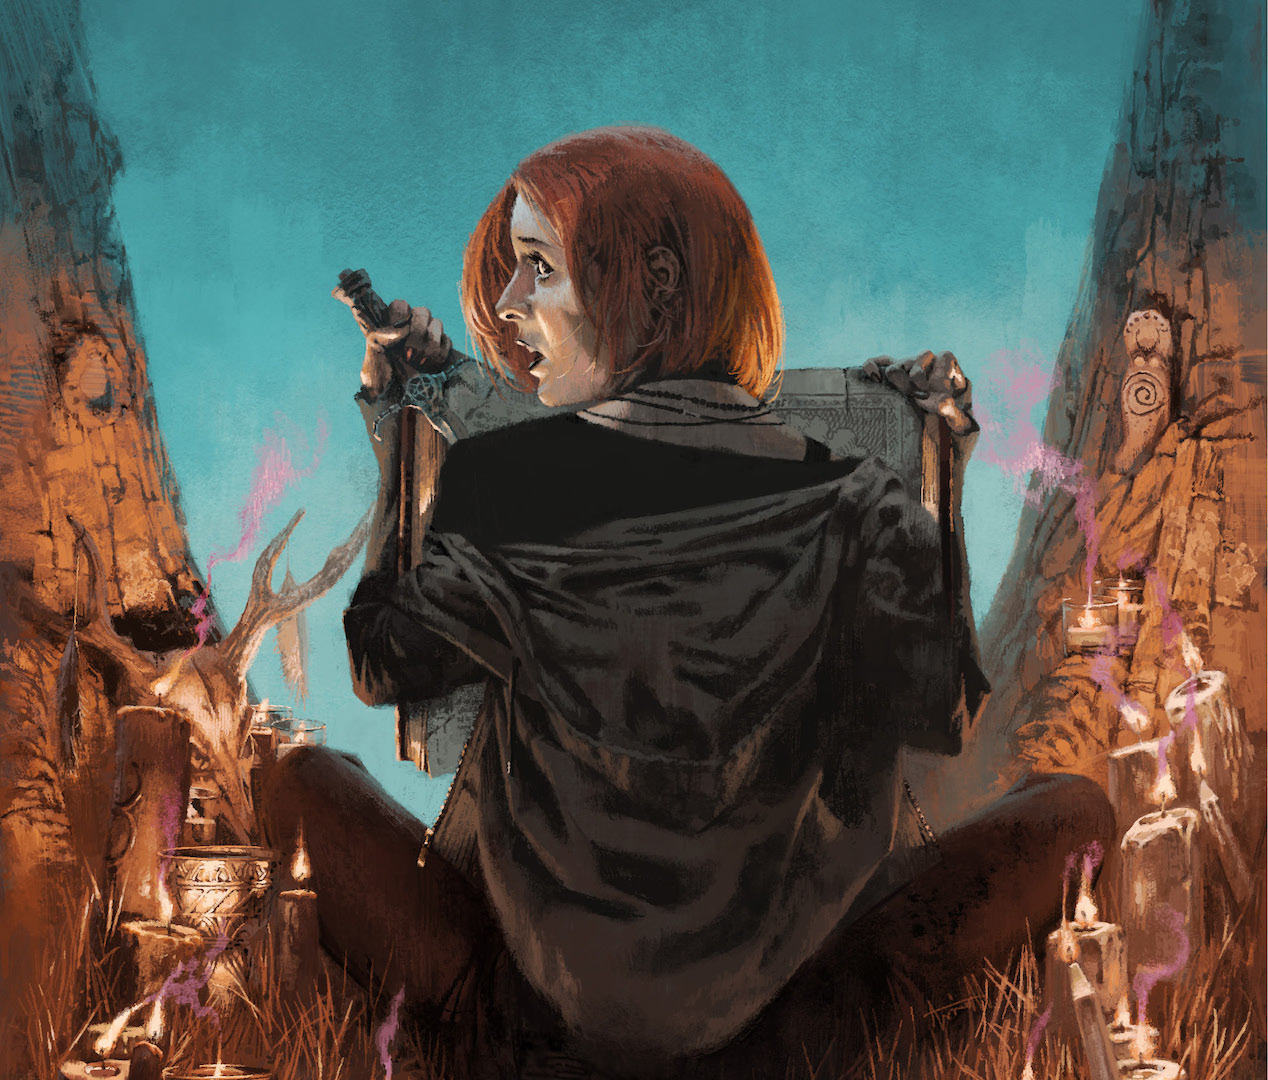 EXCLUSIVE first look: Buffy the Vampire Slayer #7 covers